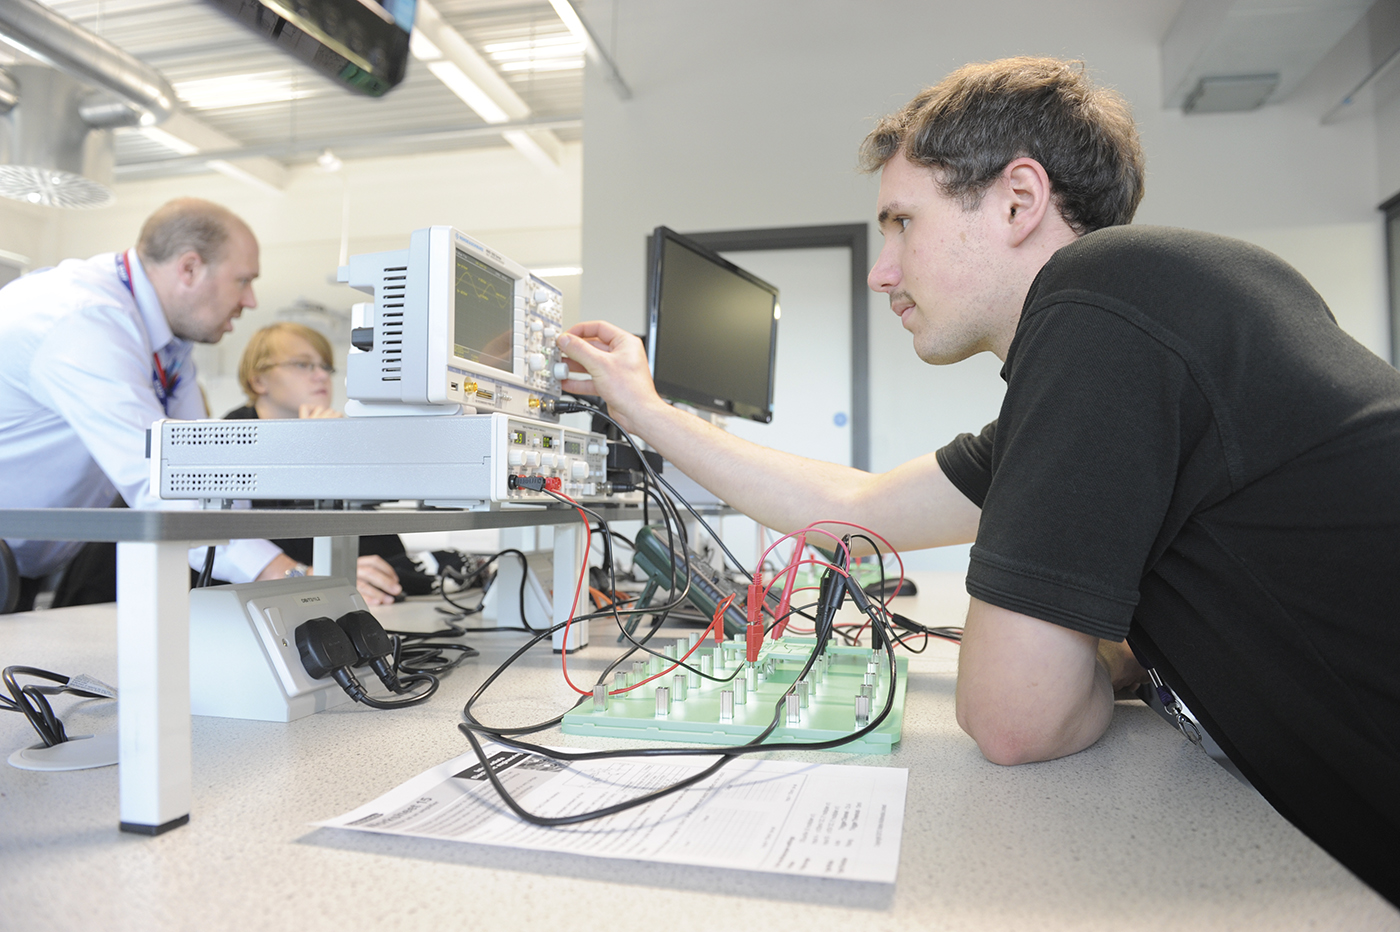 student in classroom looking at technical equipment